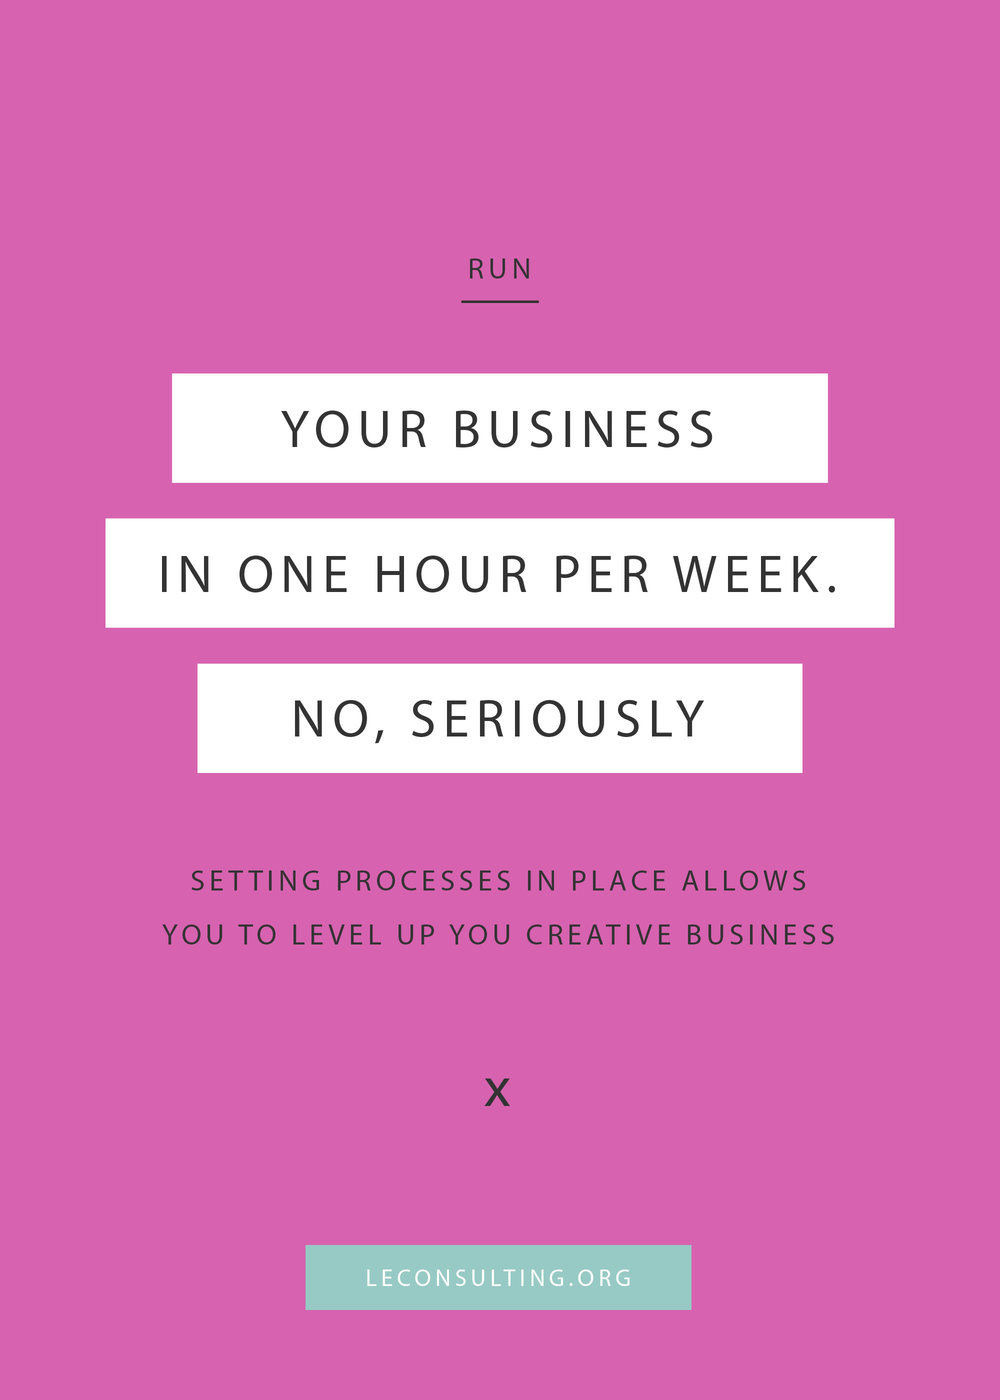 As creative entrepreneurs, we sometimes run around looking like a chicken with its head cut off. Not exactly ideal when running a business. It doesn't have to like that though. By setting processes in place, you can learn how to run your business in as little one hour a day. Click through to read how to level up your creative business. | LE Consulting